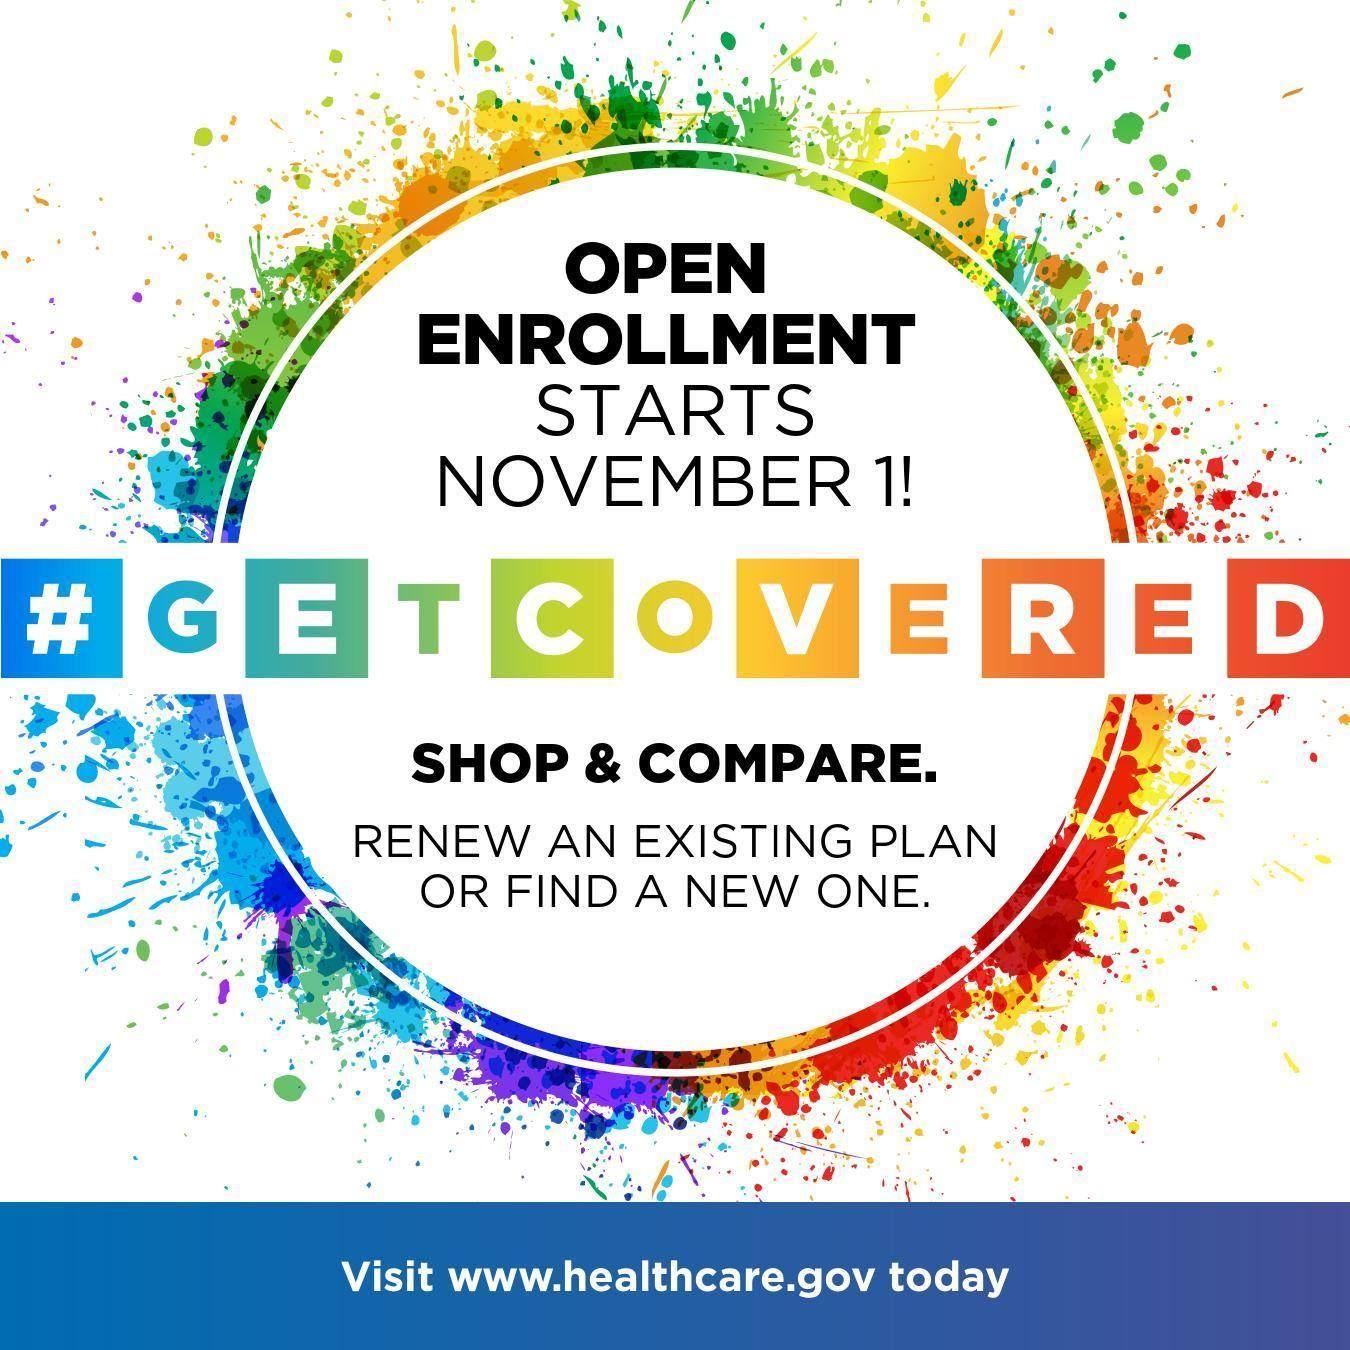 In Washington State the open enrollment period for health